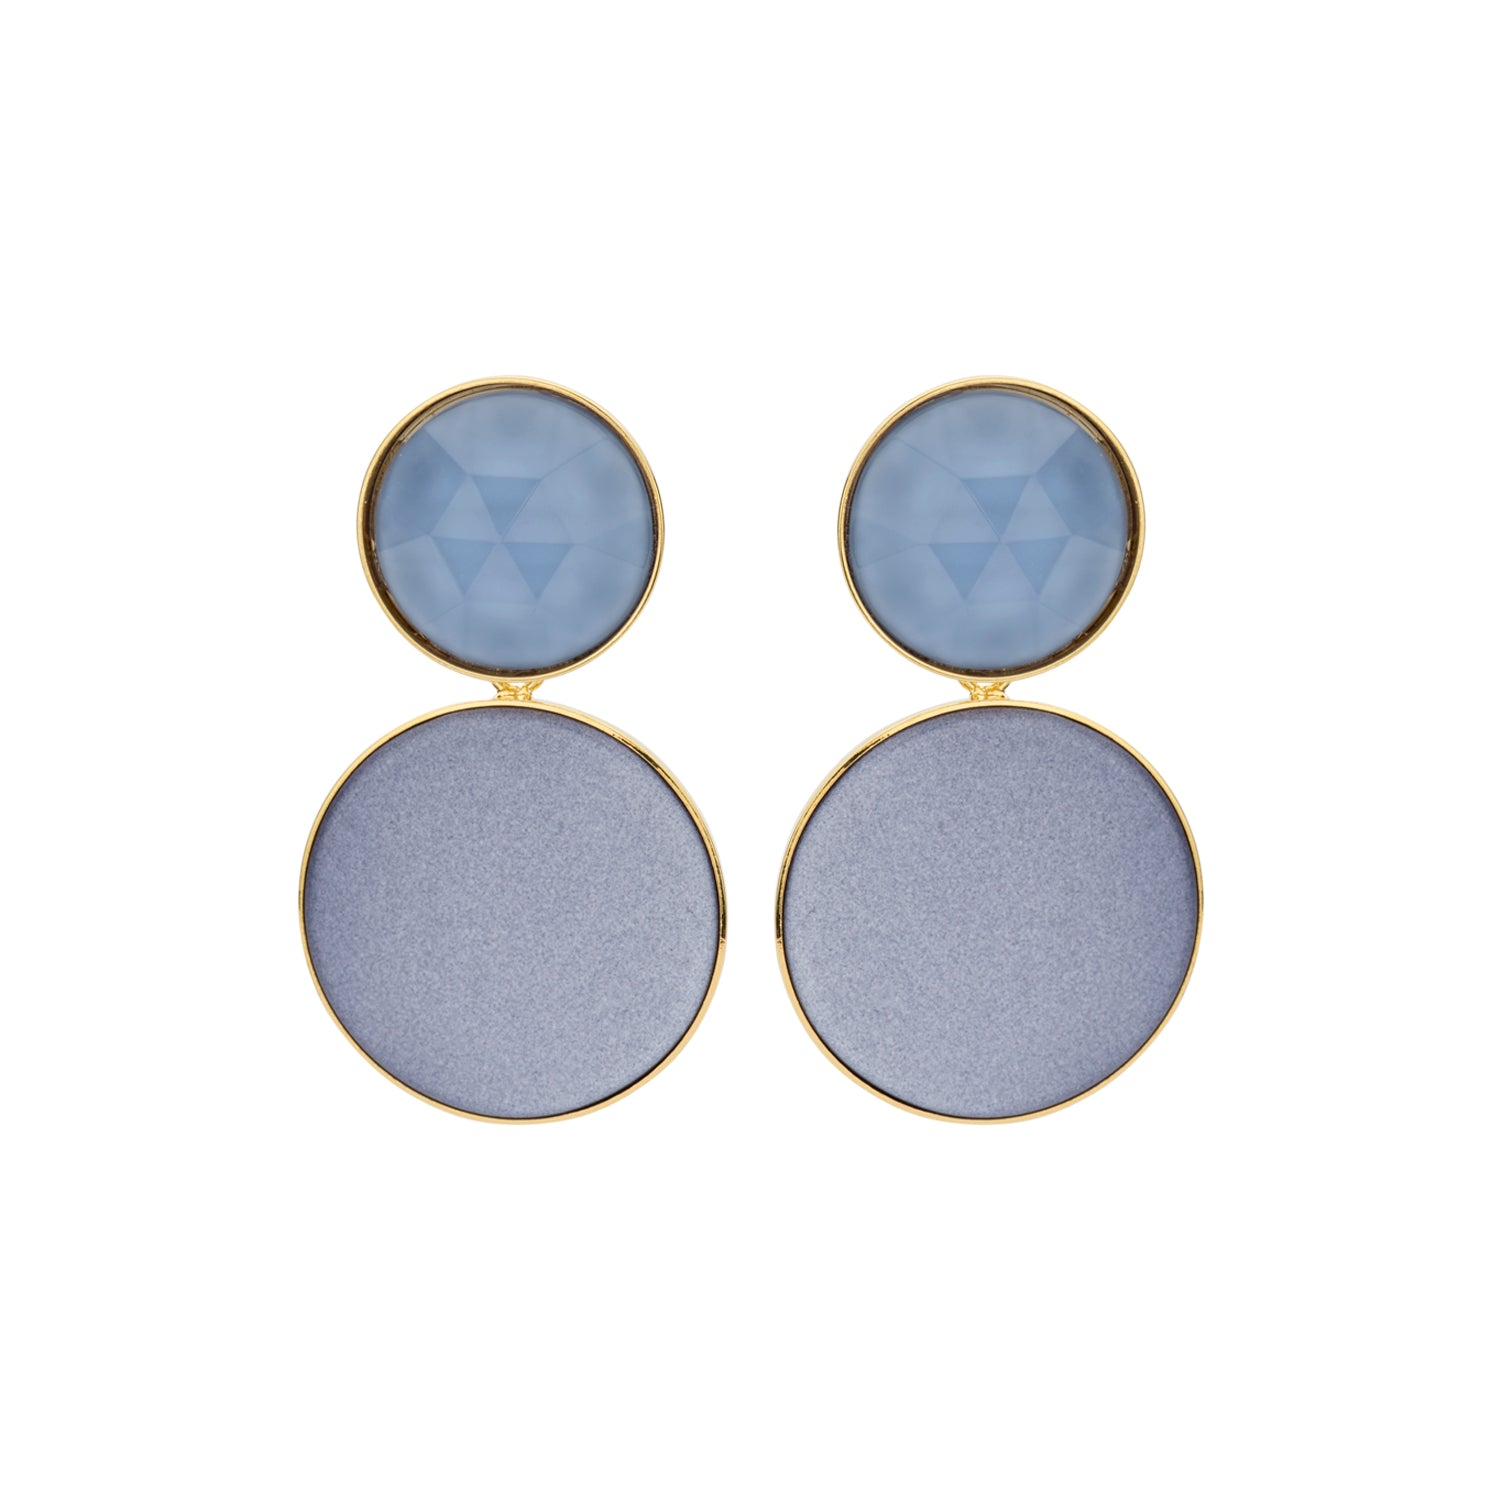 Large disk flat jeans earrings - Souvenirs de Pomme